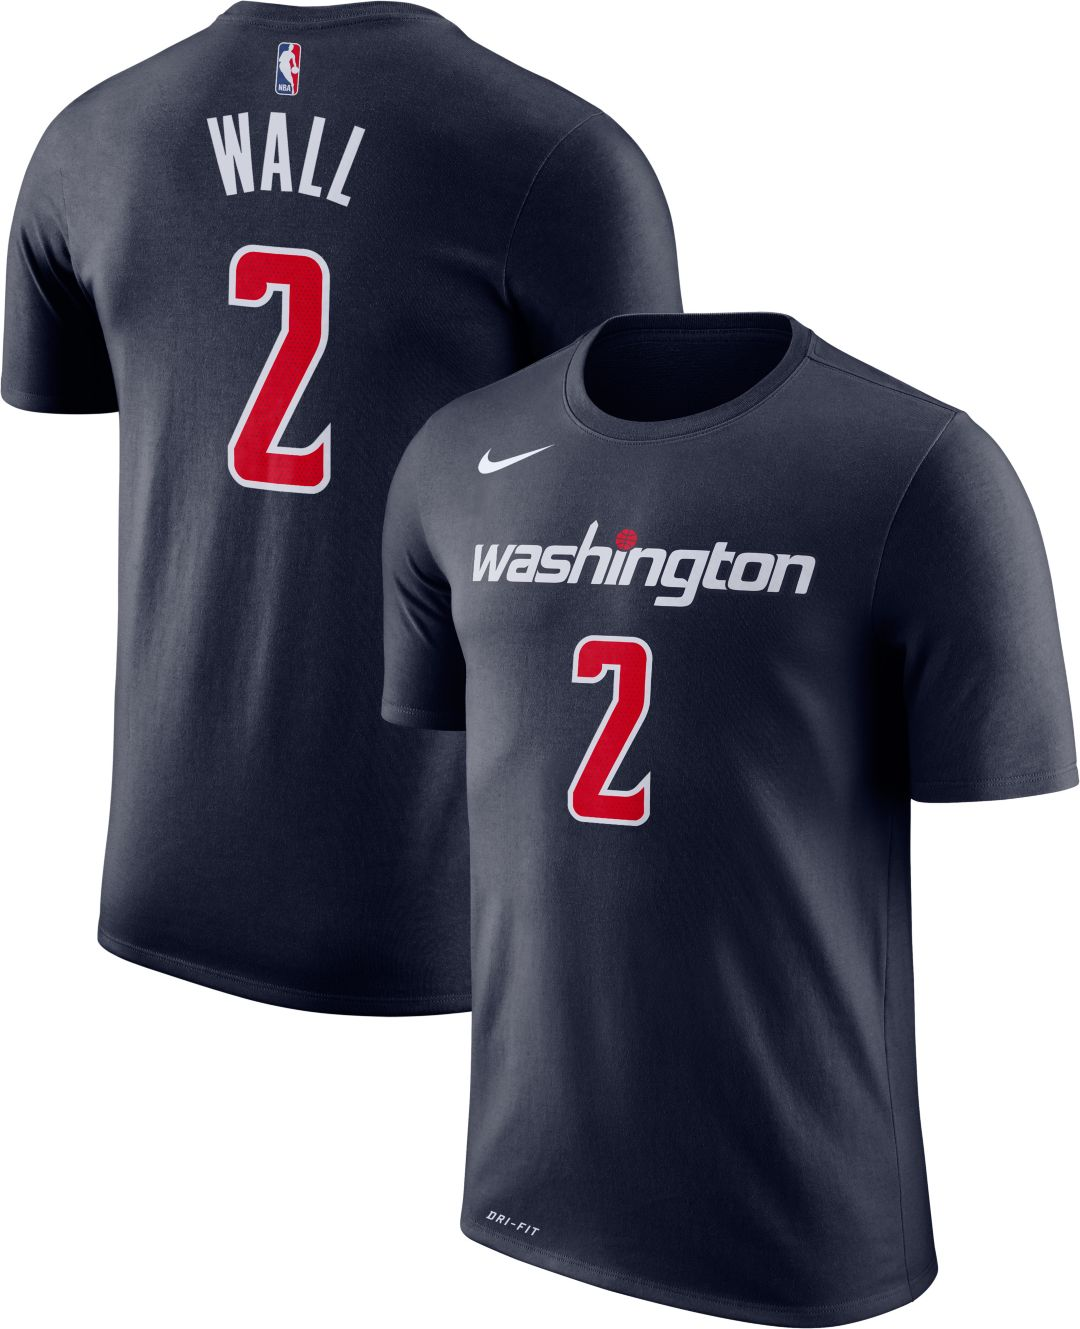 sale retailer 09073 63f0a Nike Men's Washington Wizards John Wall #2 Dri-FIT Navy T-Shirt